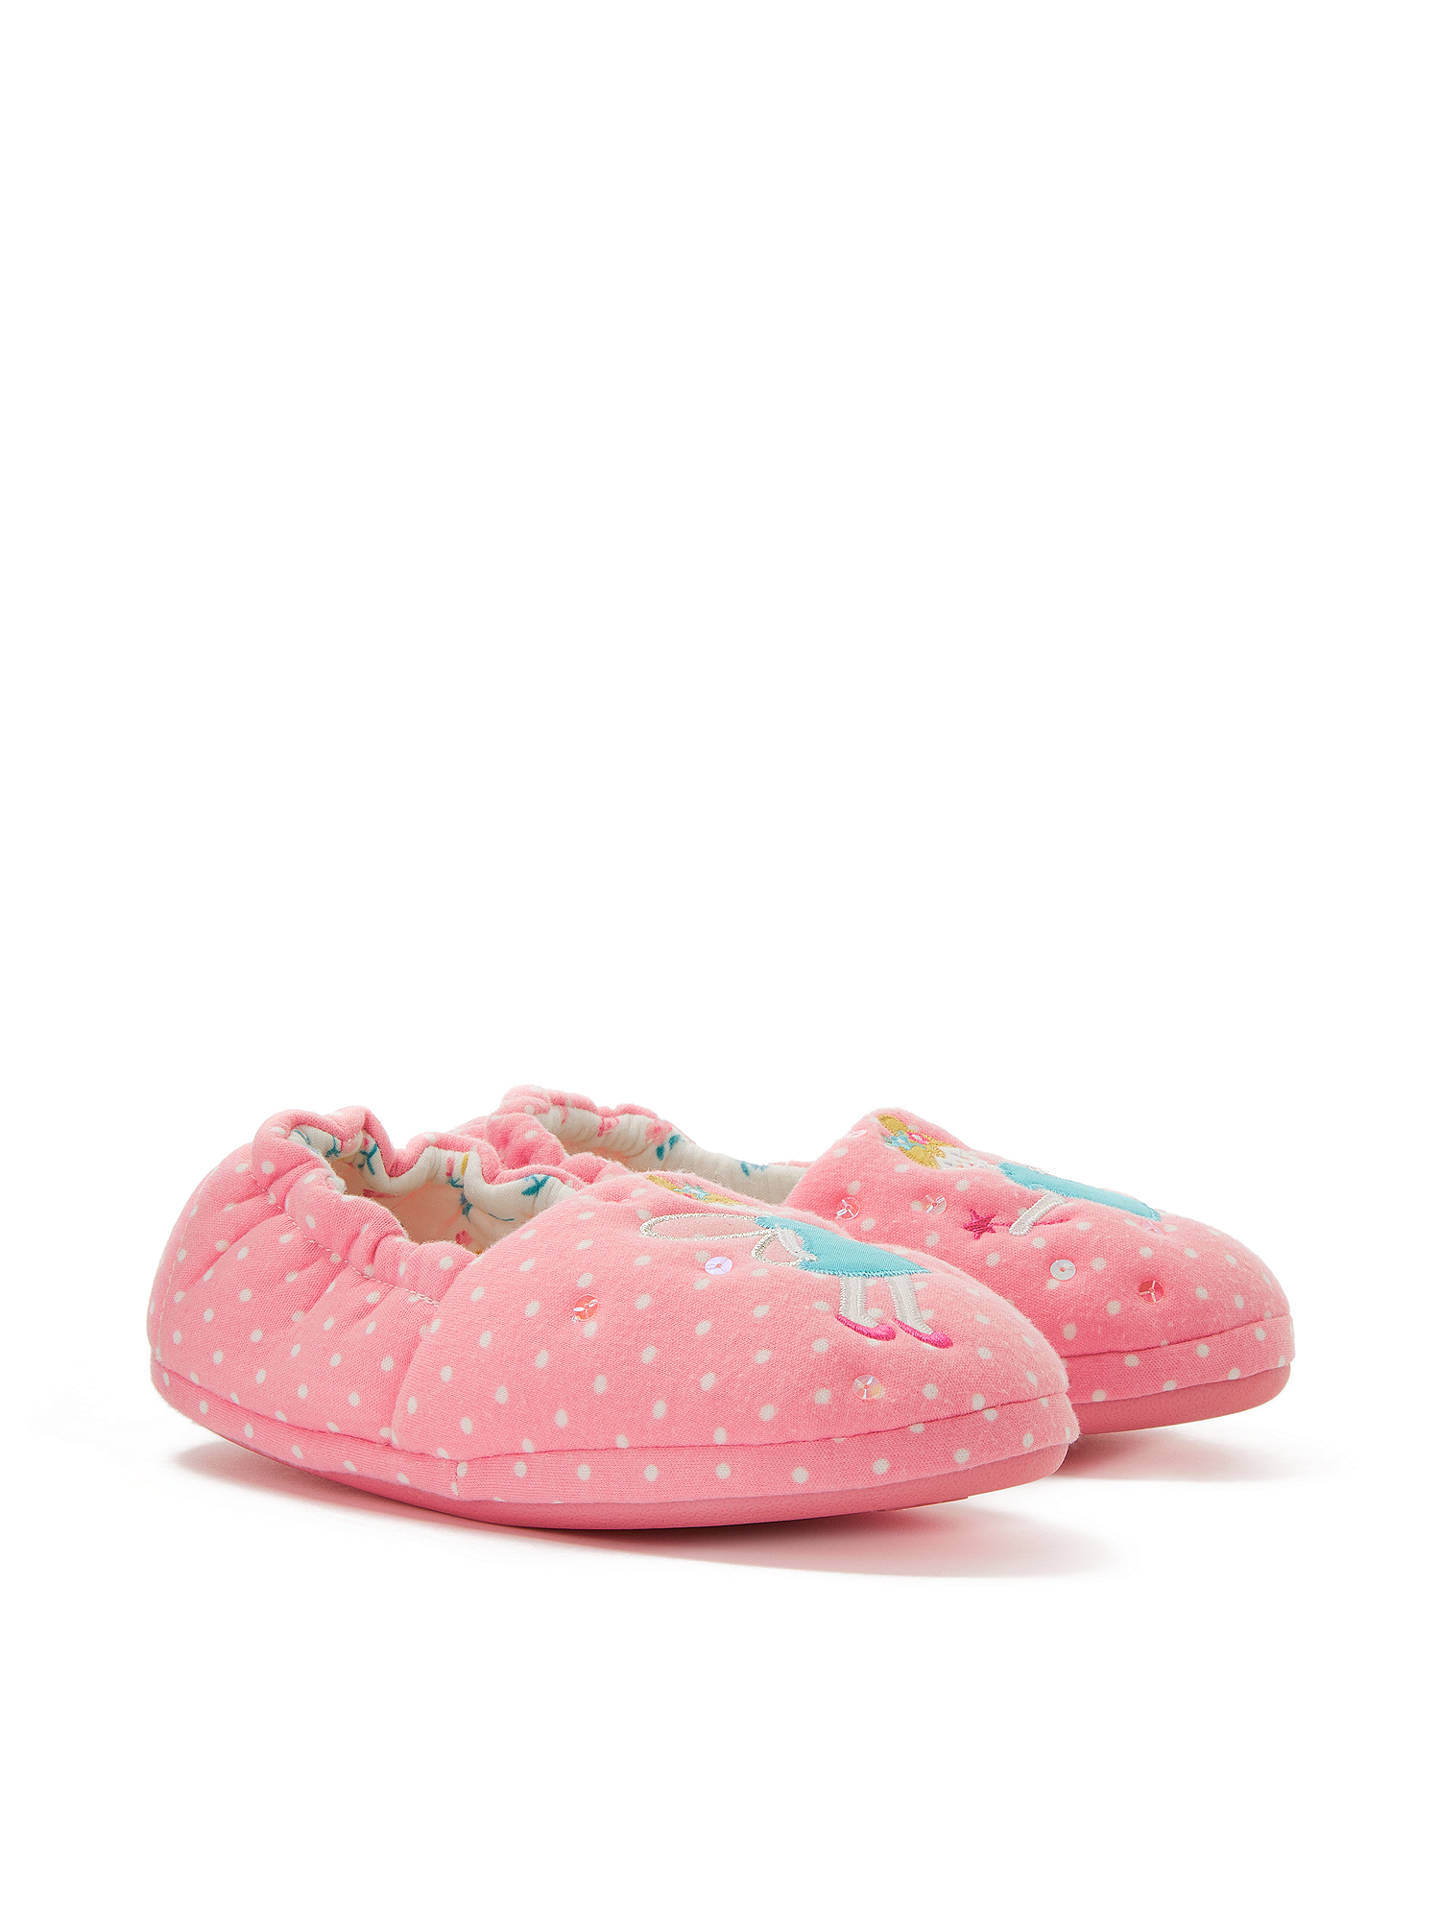 BuyJohn Lewis & Partners Children's Fairy Slippers, Pink, 6 Jnr Online at johnlewis.com